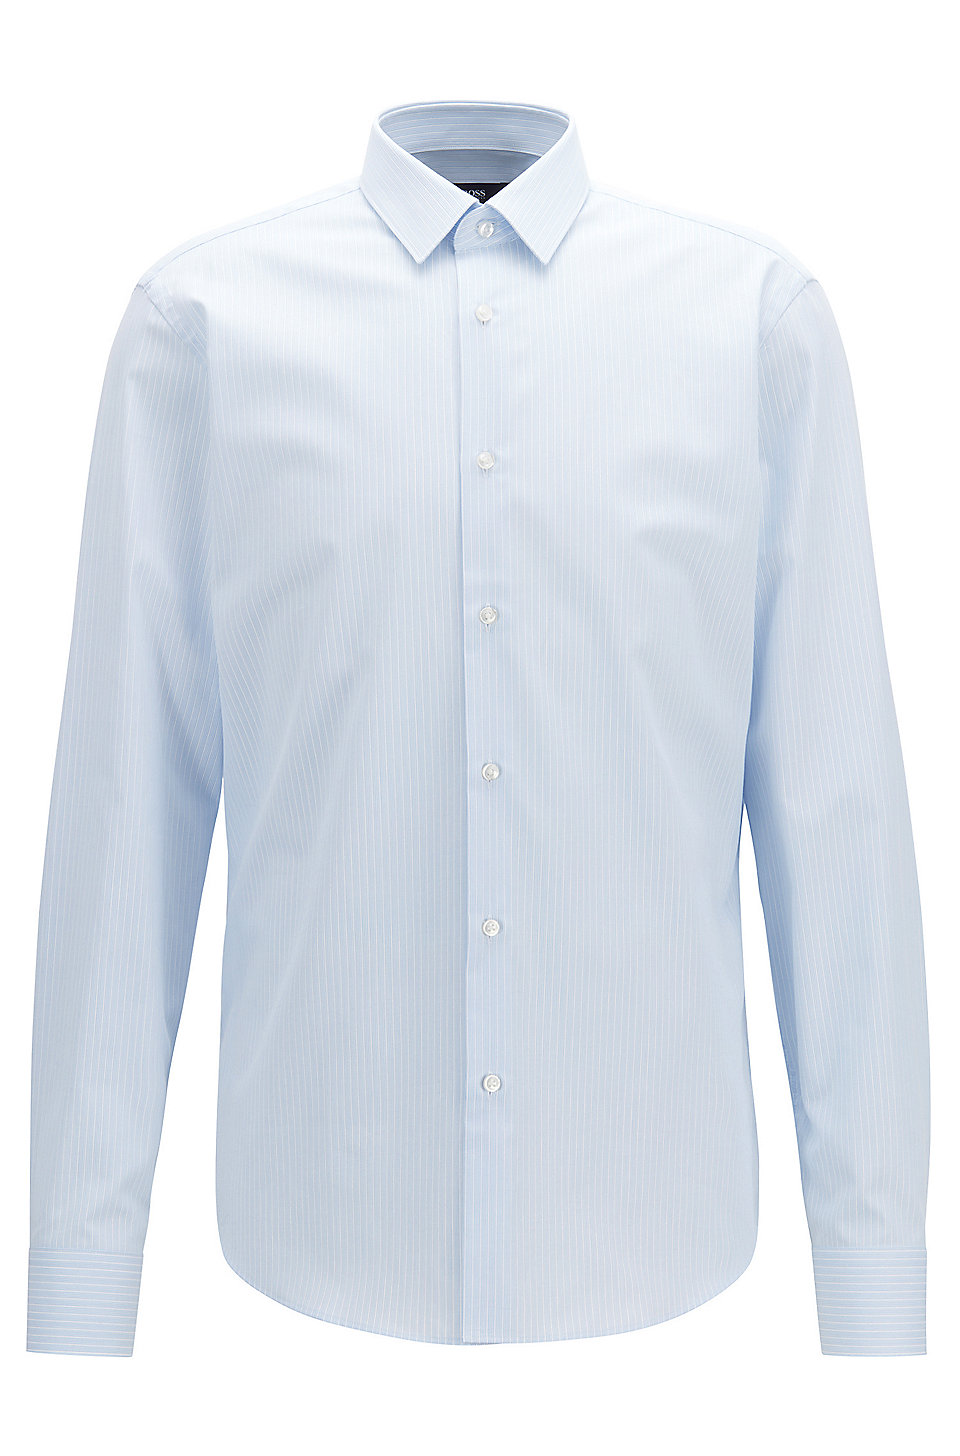 ca3cbbe8c BOSS - Regular-fit shirt in cotton with textured fine stripe